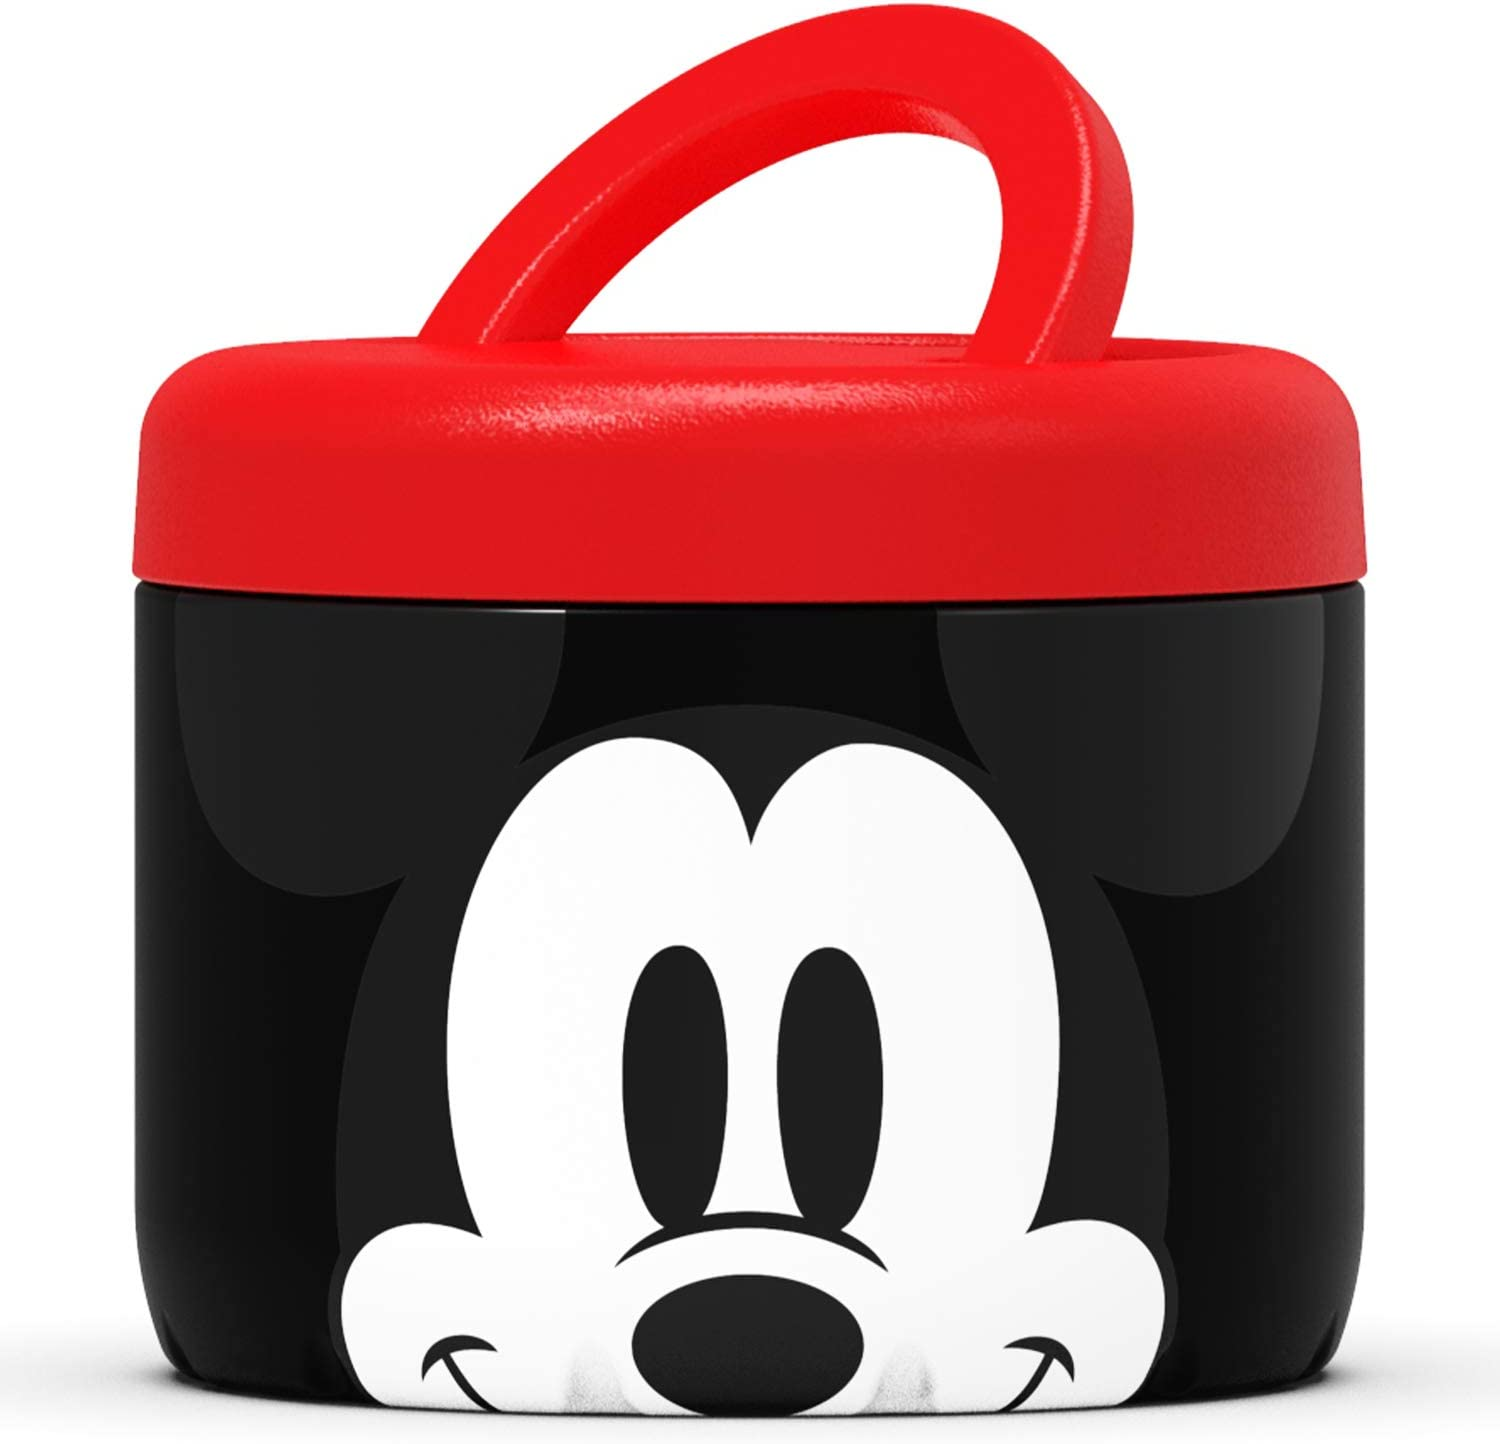 S'nack by S'well Stainless Steel Food Container - 24 Fl Oz - Disney Hello Mickey Mouse - Double-Layered Insulated Bowls Keep Food and Drinks Food and Drinks Cold for 12 Hours and Hot for 7 Hours